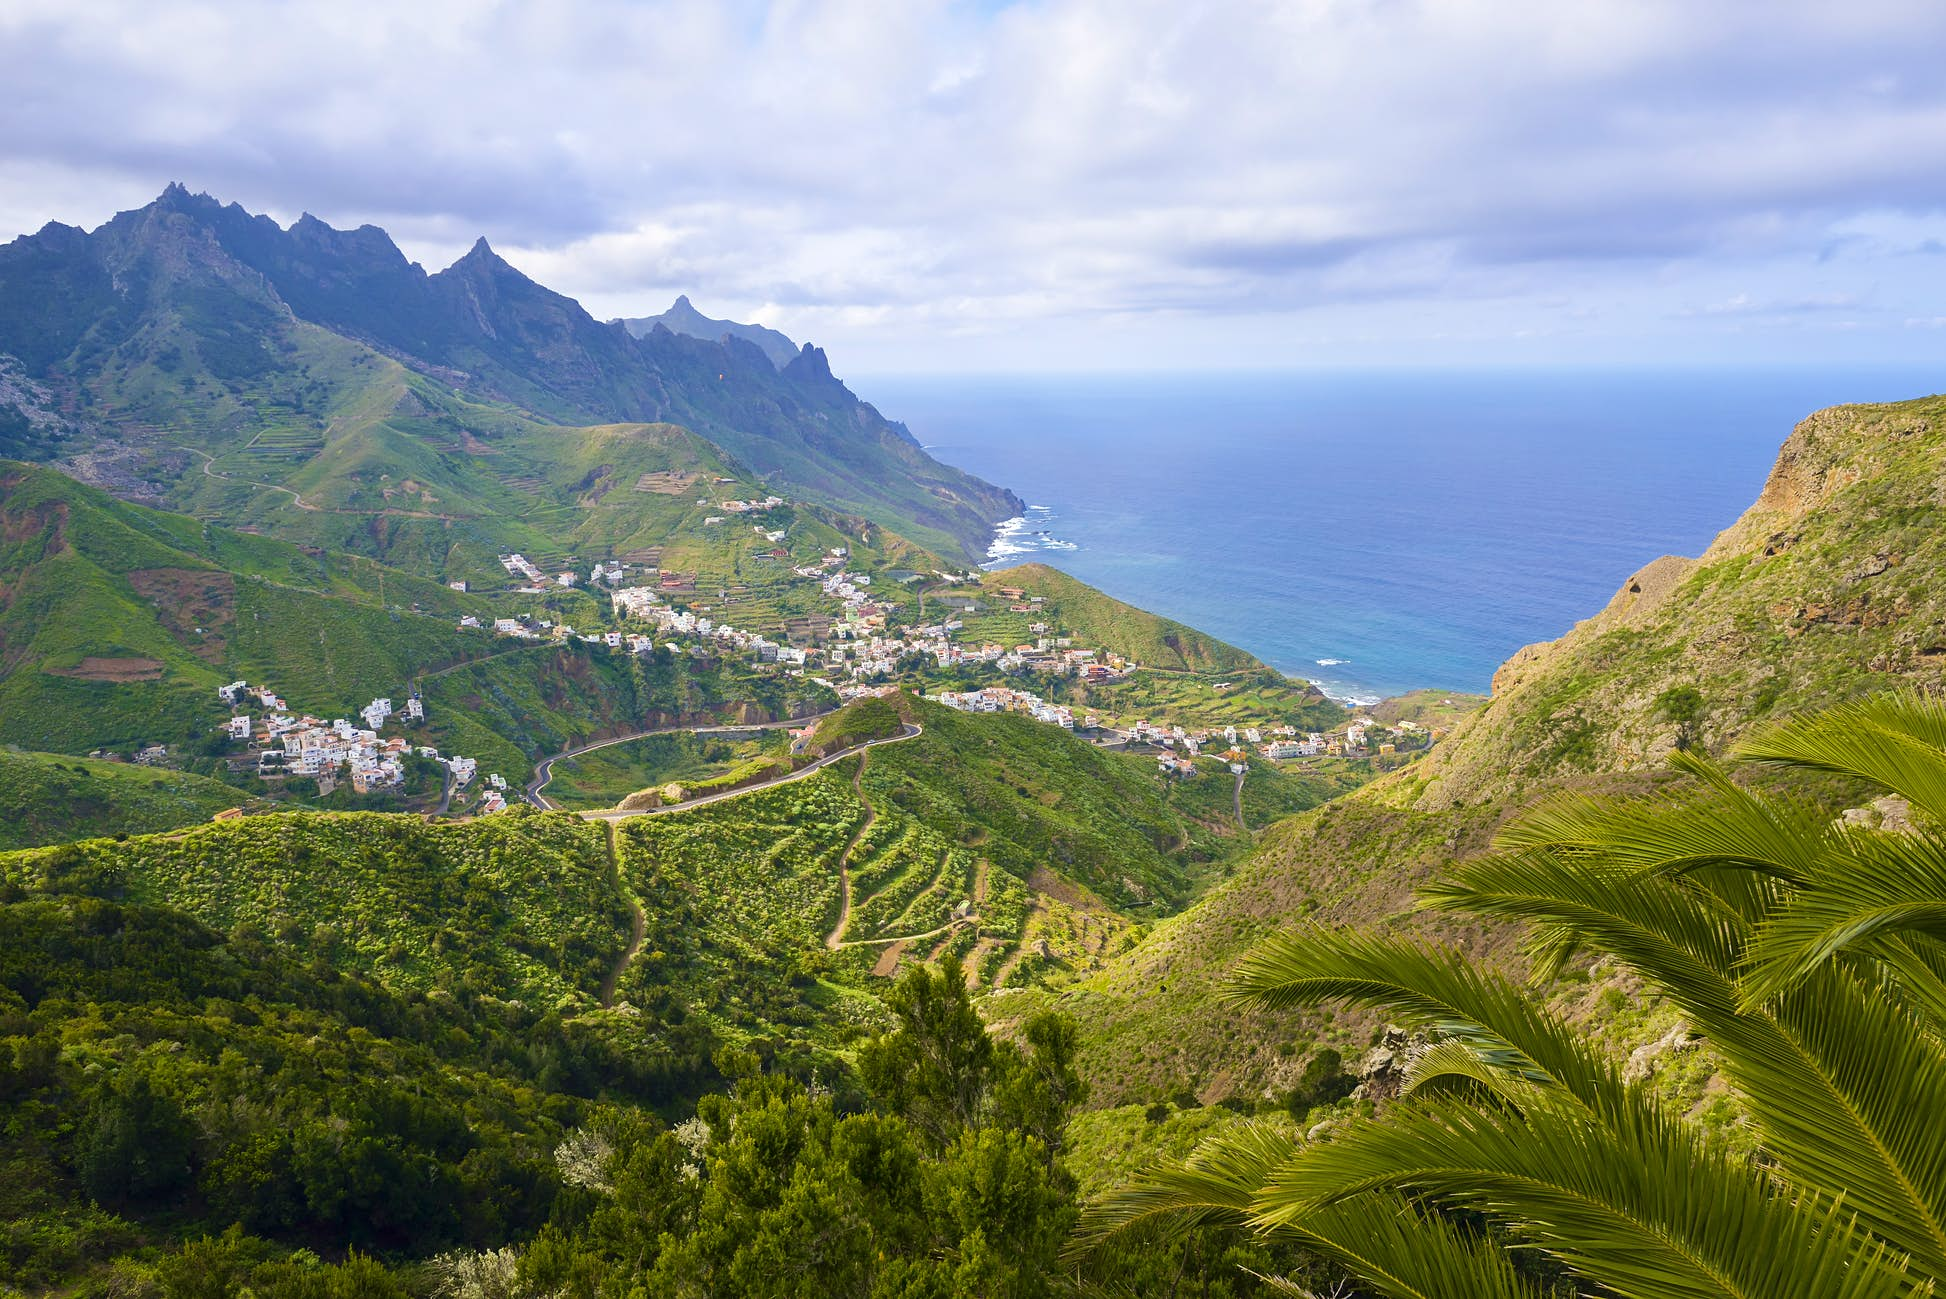 Anaga Mountains, Taganana, Tenerife ©Westend61/Getty Images